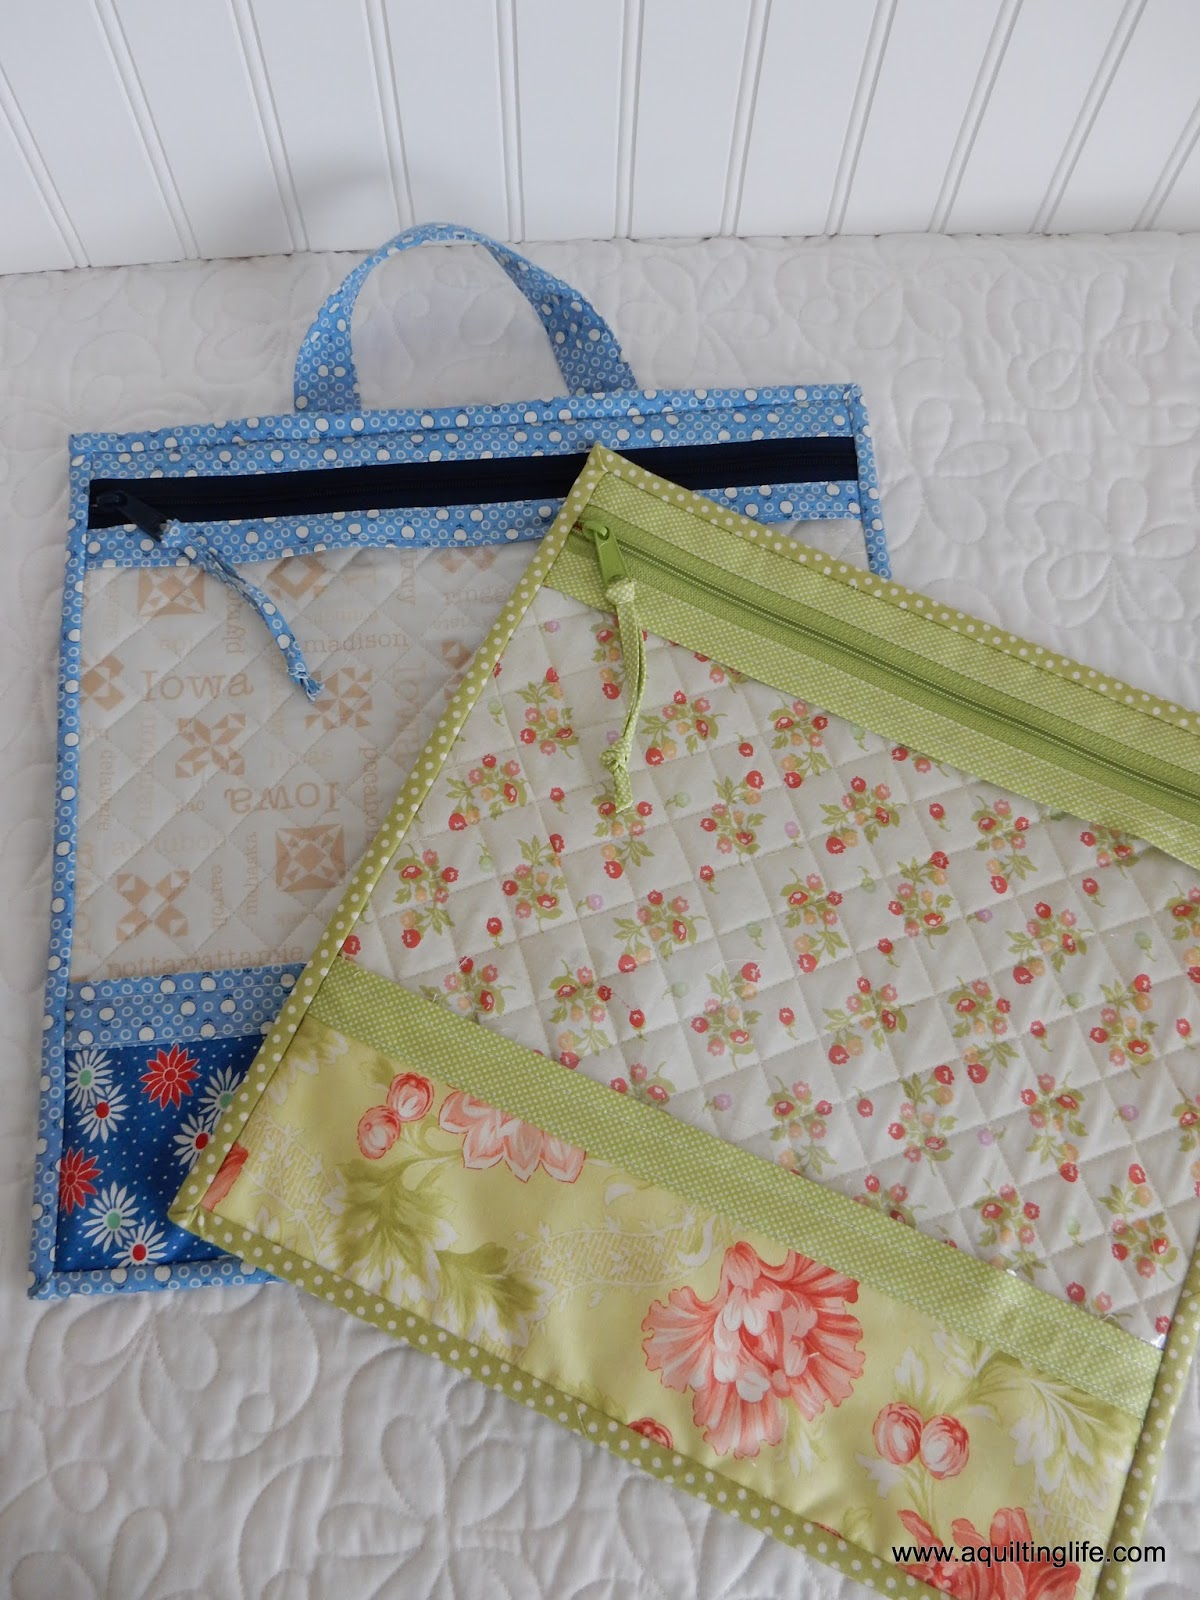 Christmas sewing project bags a quilting life for Craft patterns to sew